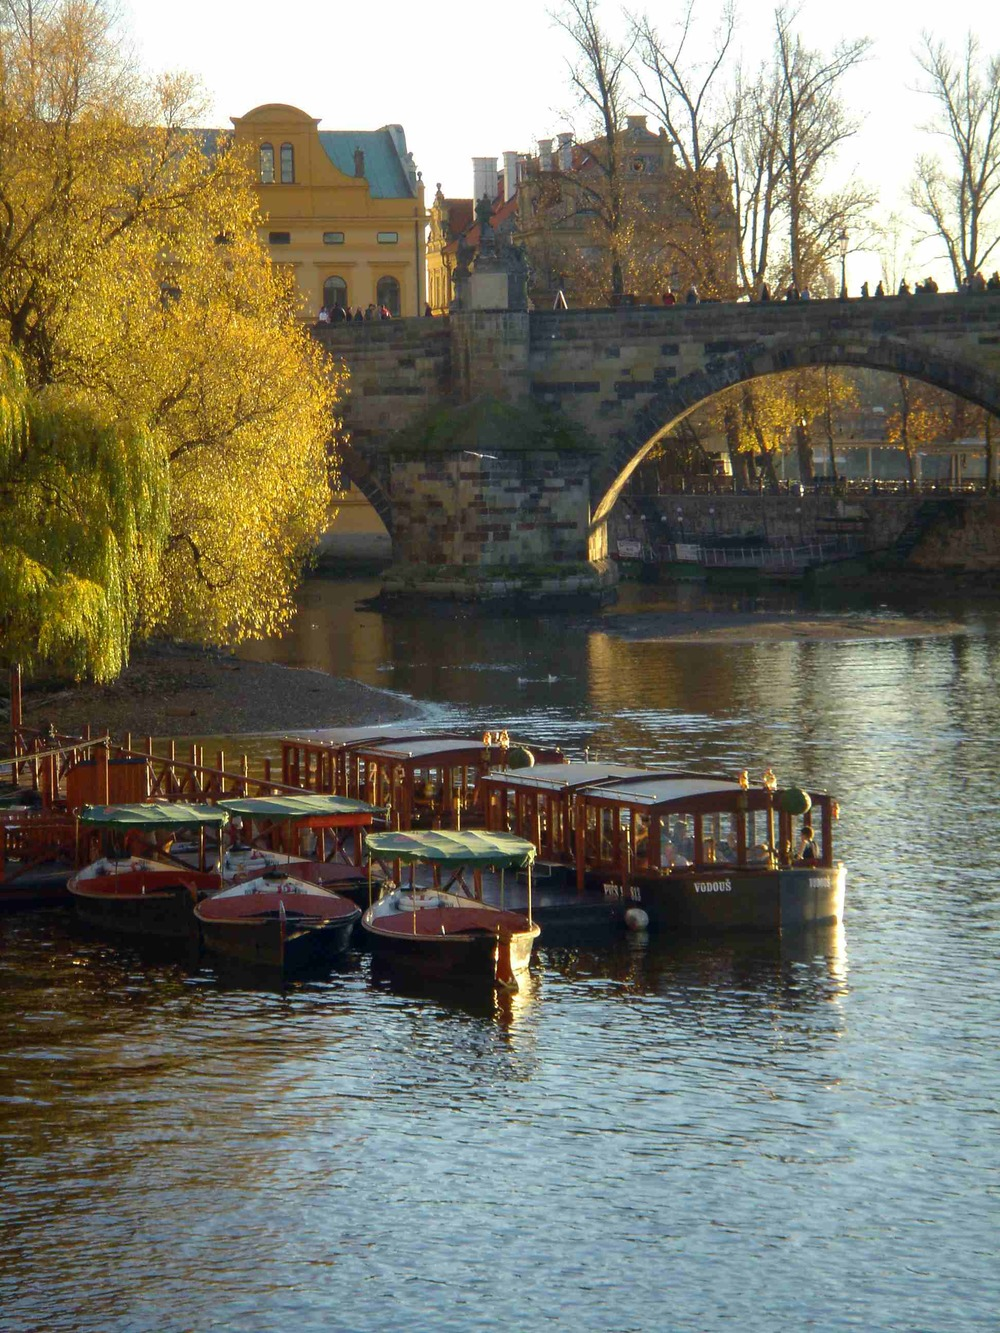 Riverboats in front of the Charles Bridge, Prague, Czech Republic